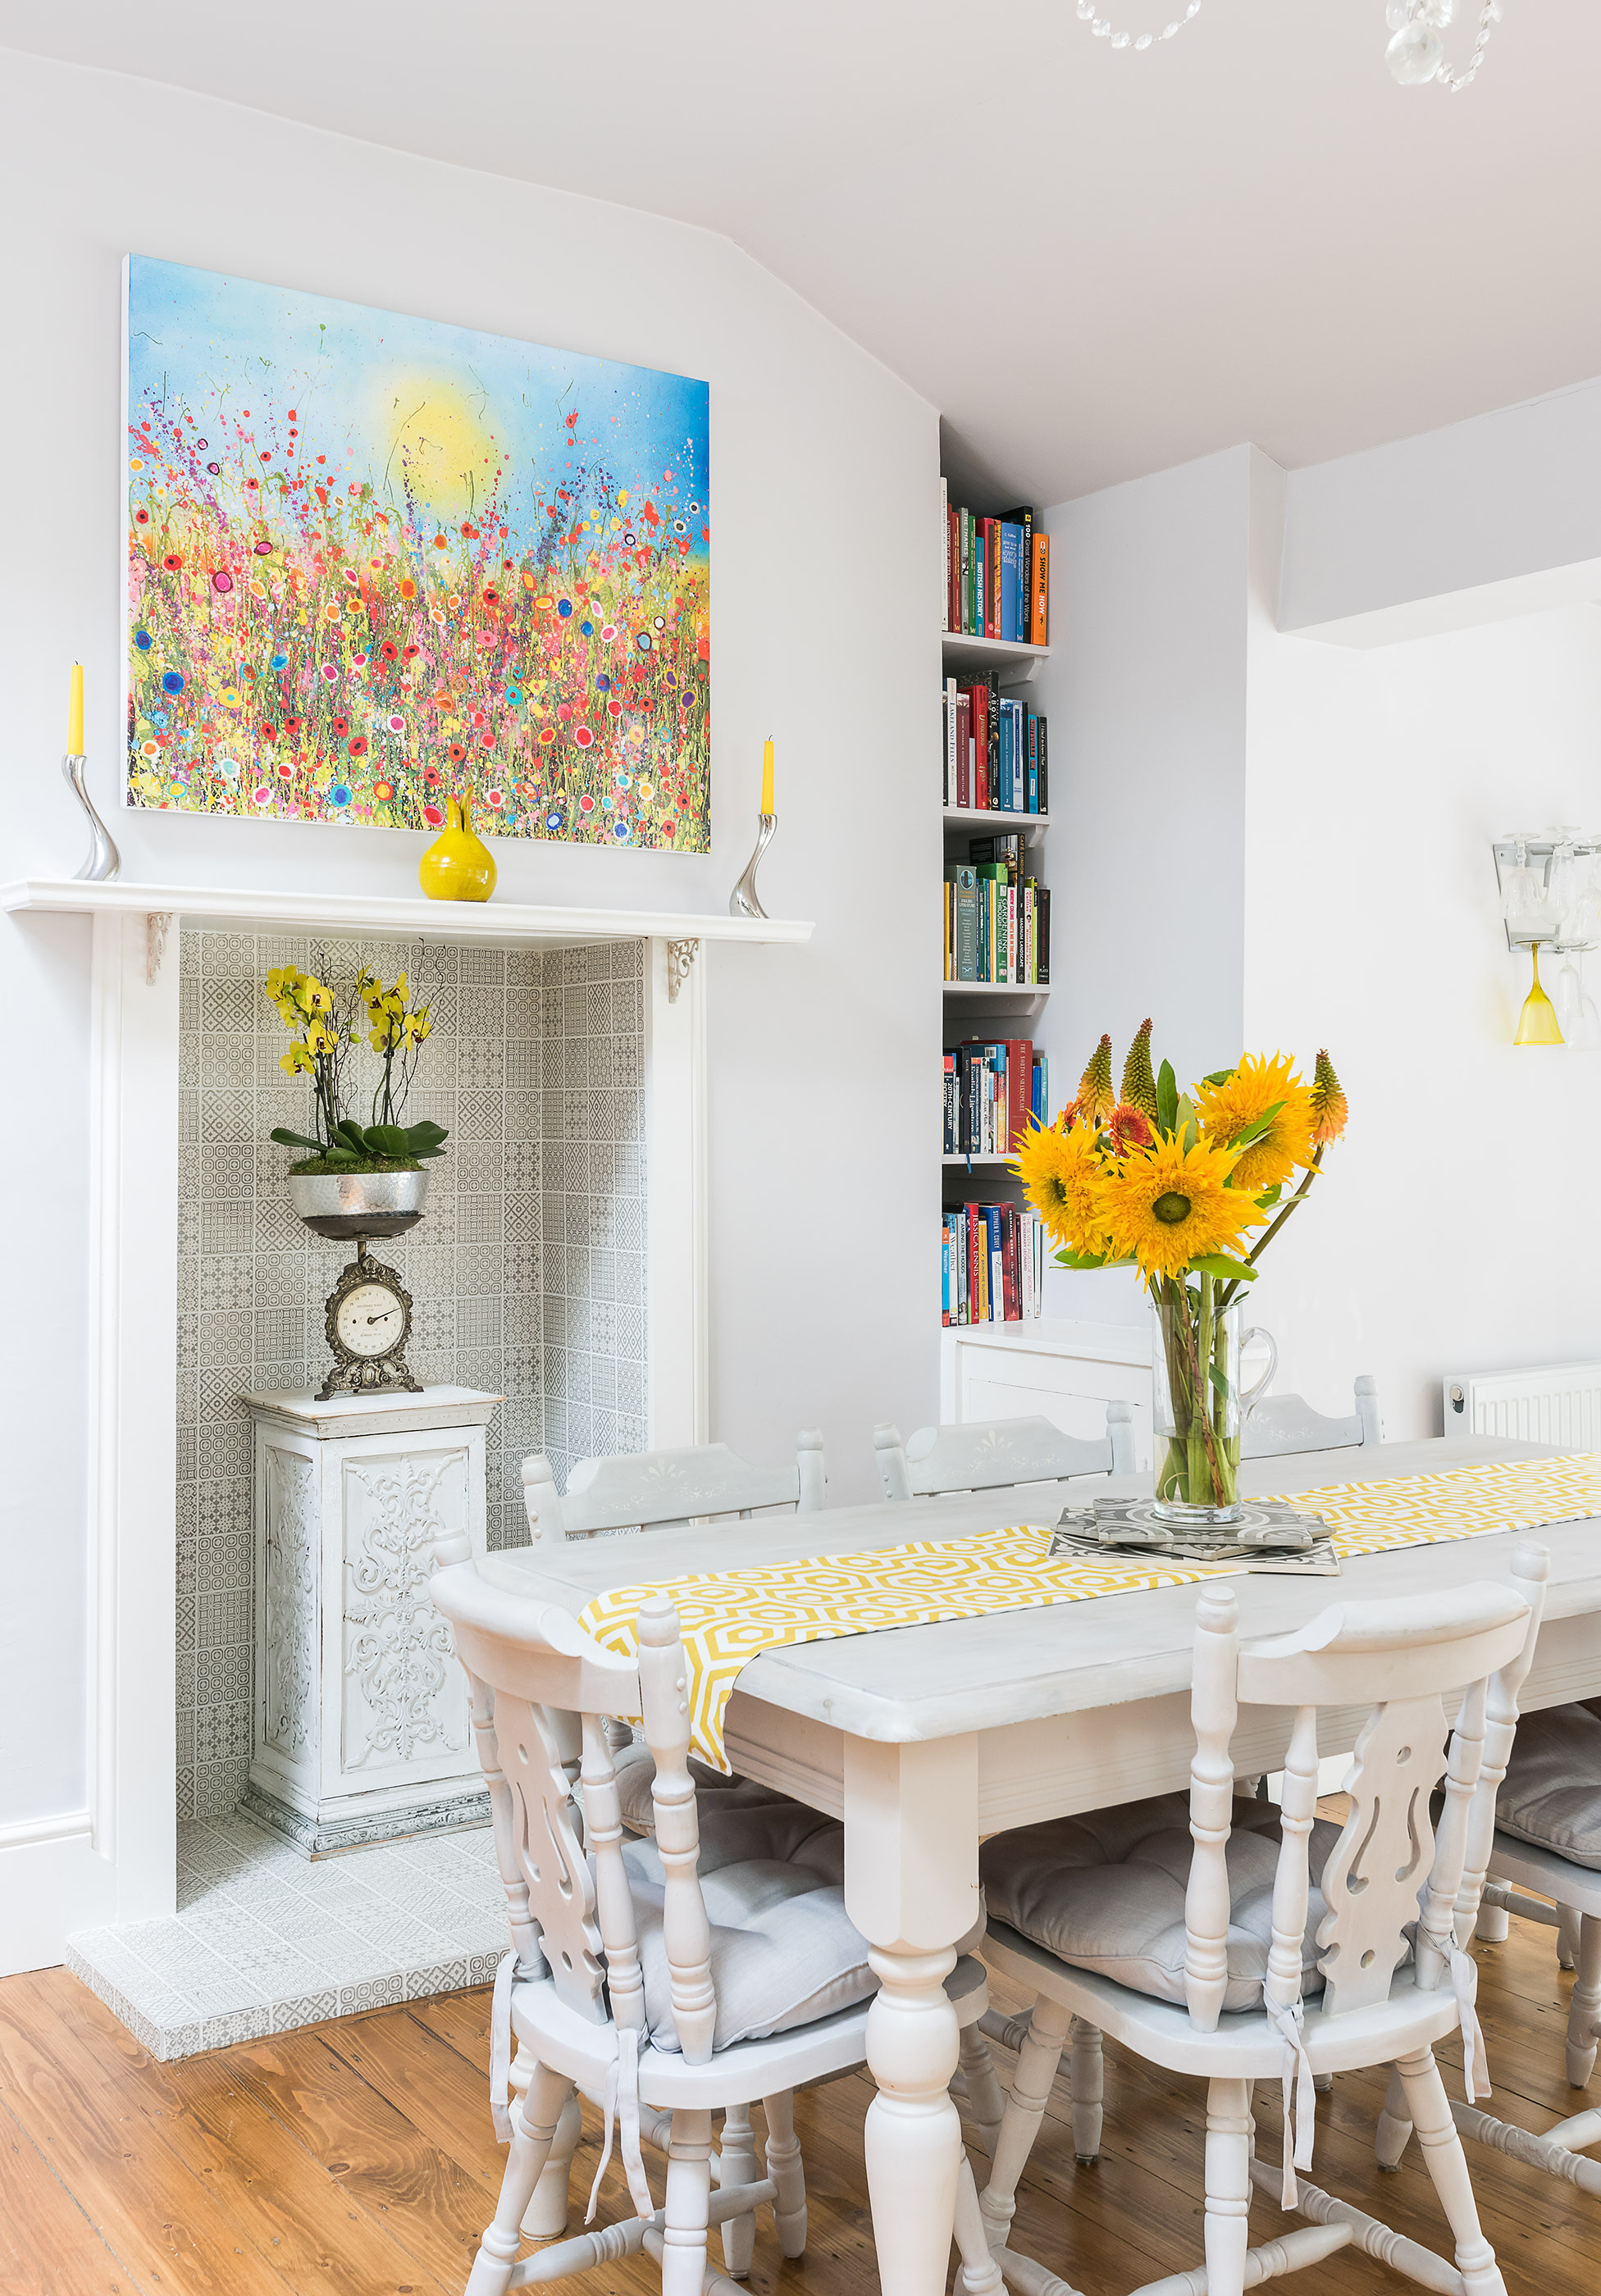 Upcycling: Kitchen Table and Chairs After